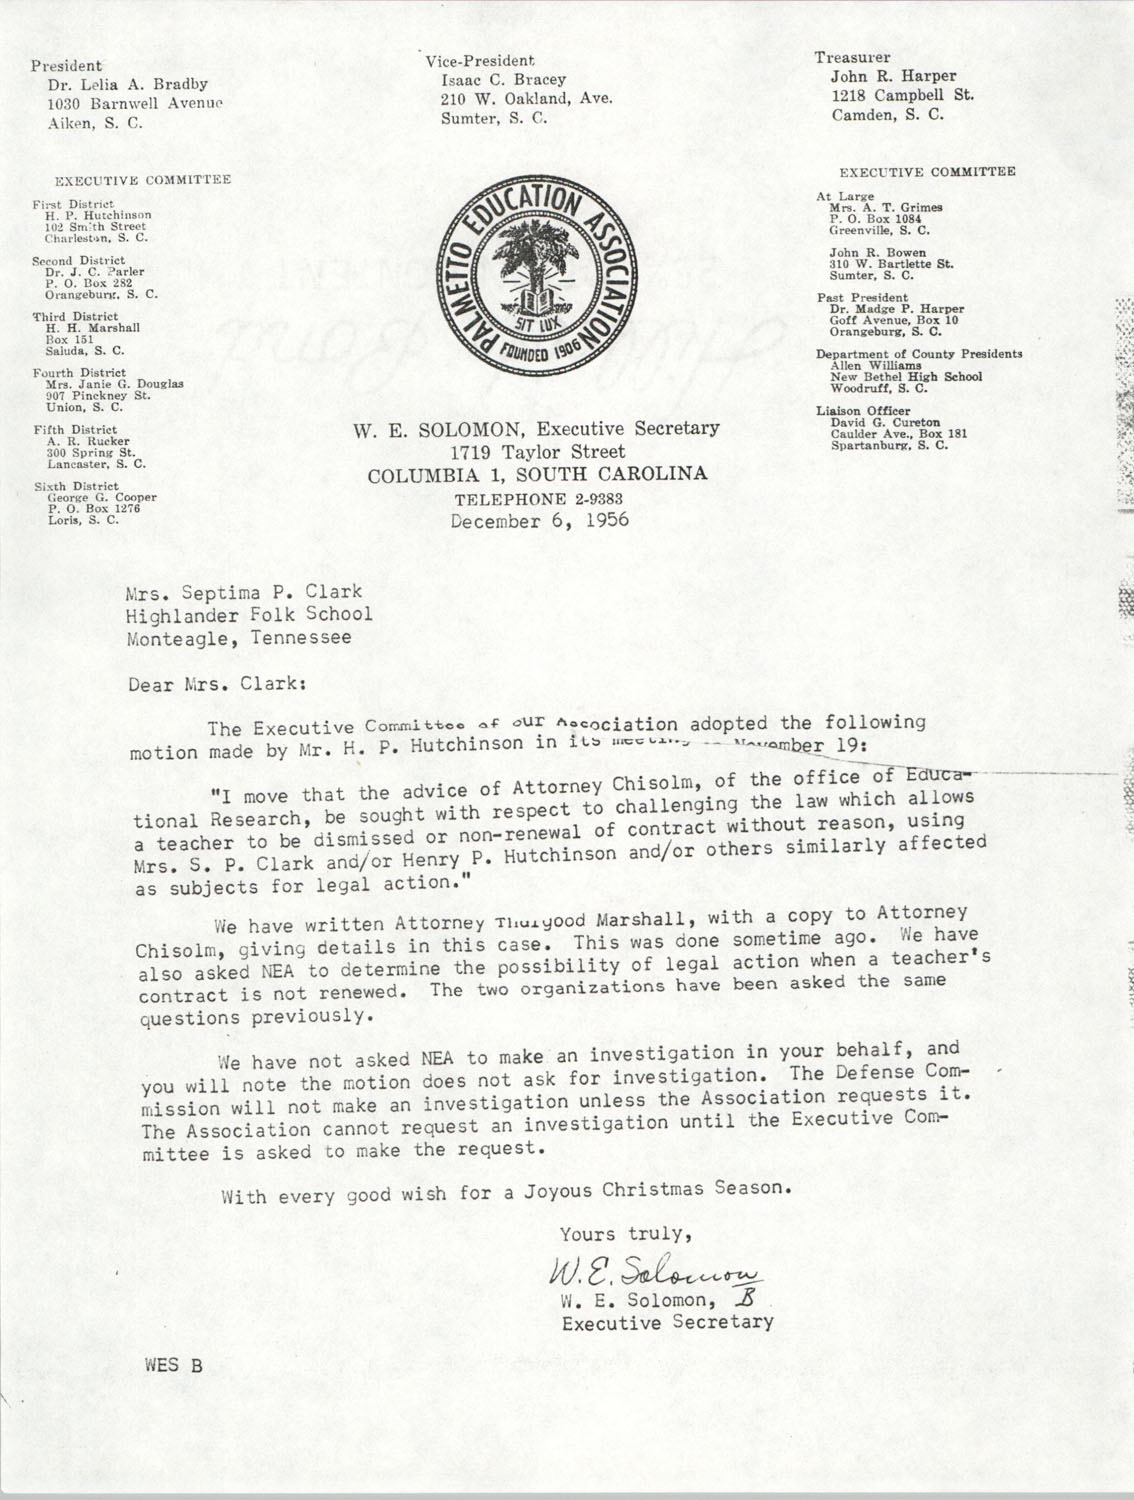 Letter from W. E. Solomon to Septima P. Clark, December 6, 1956